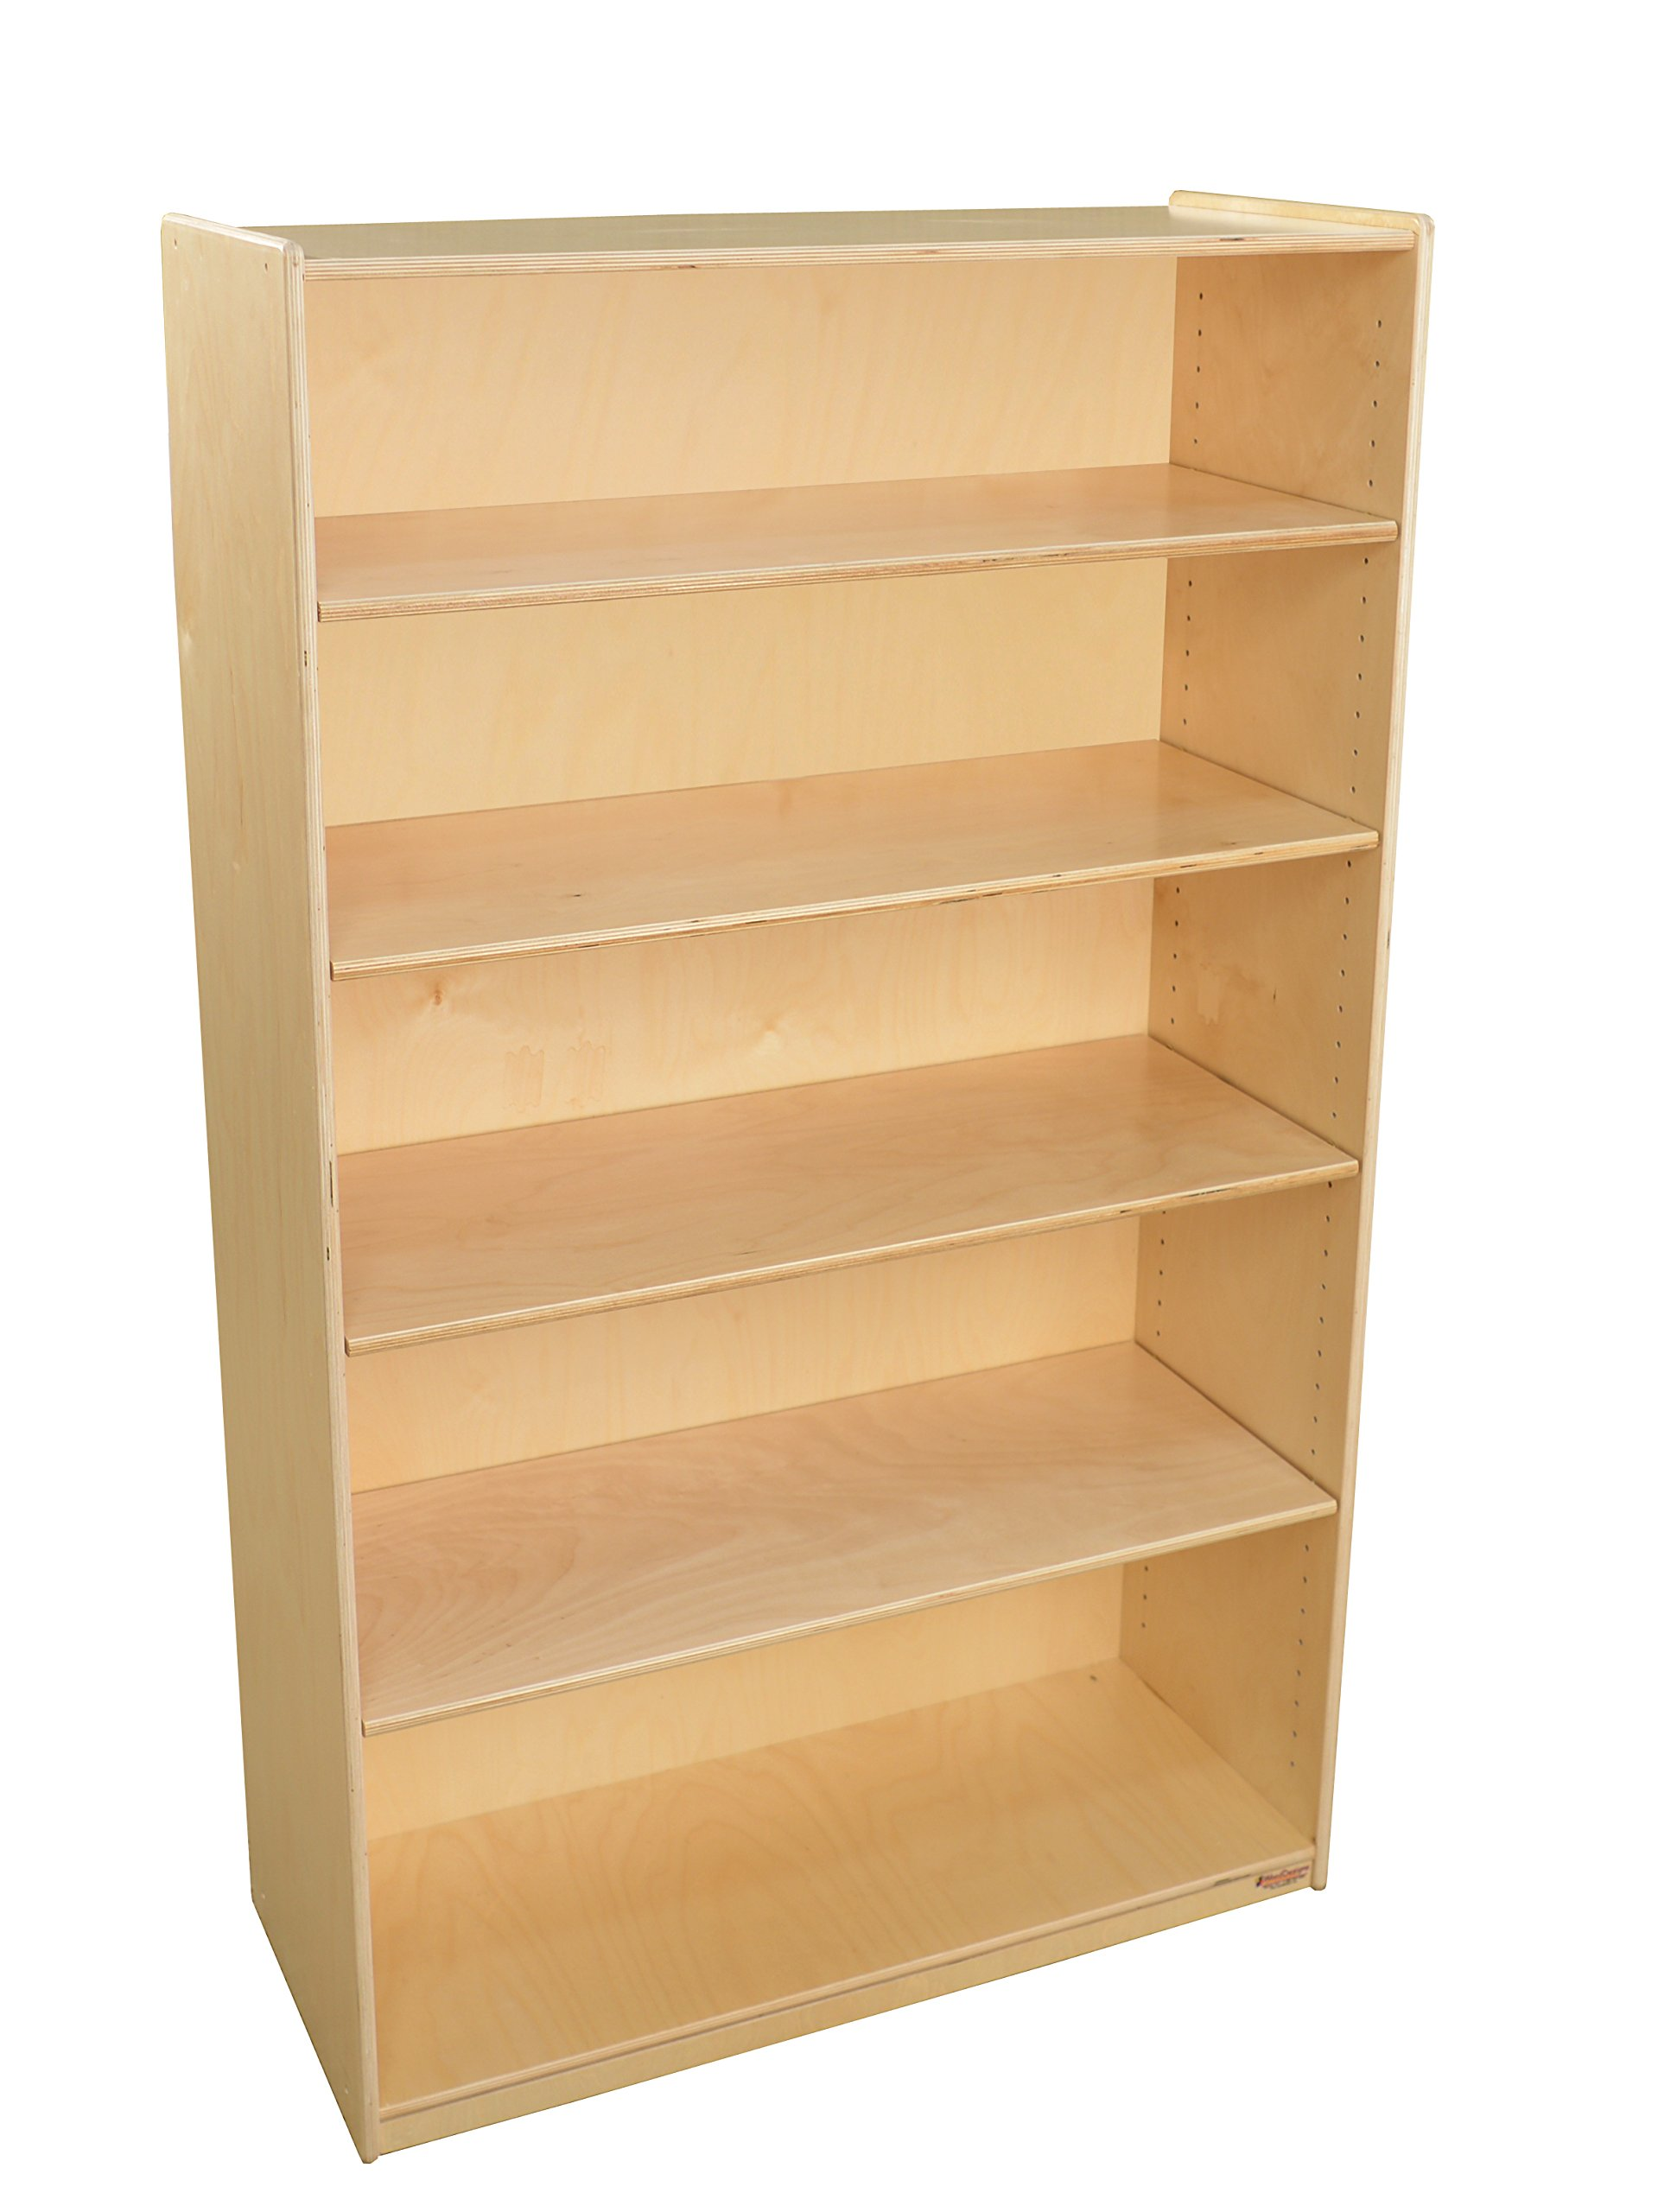 Wood Designs WD12960AJ Bookshelf with Adjustable Shelves, 59''-1/2'' H